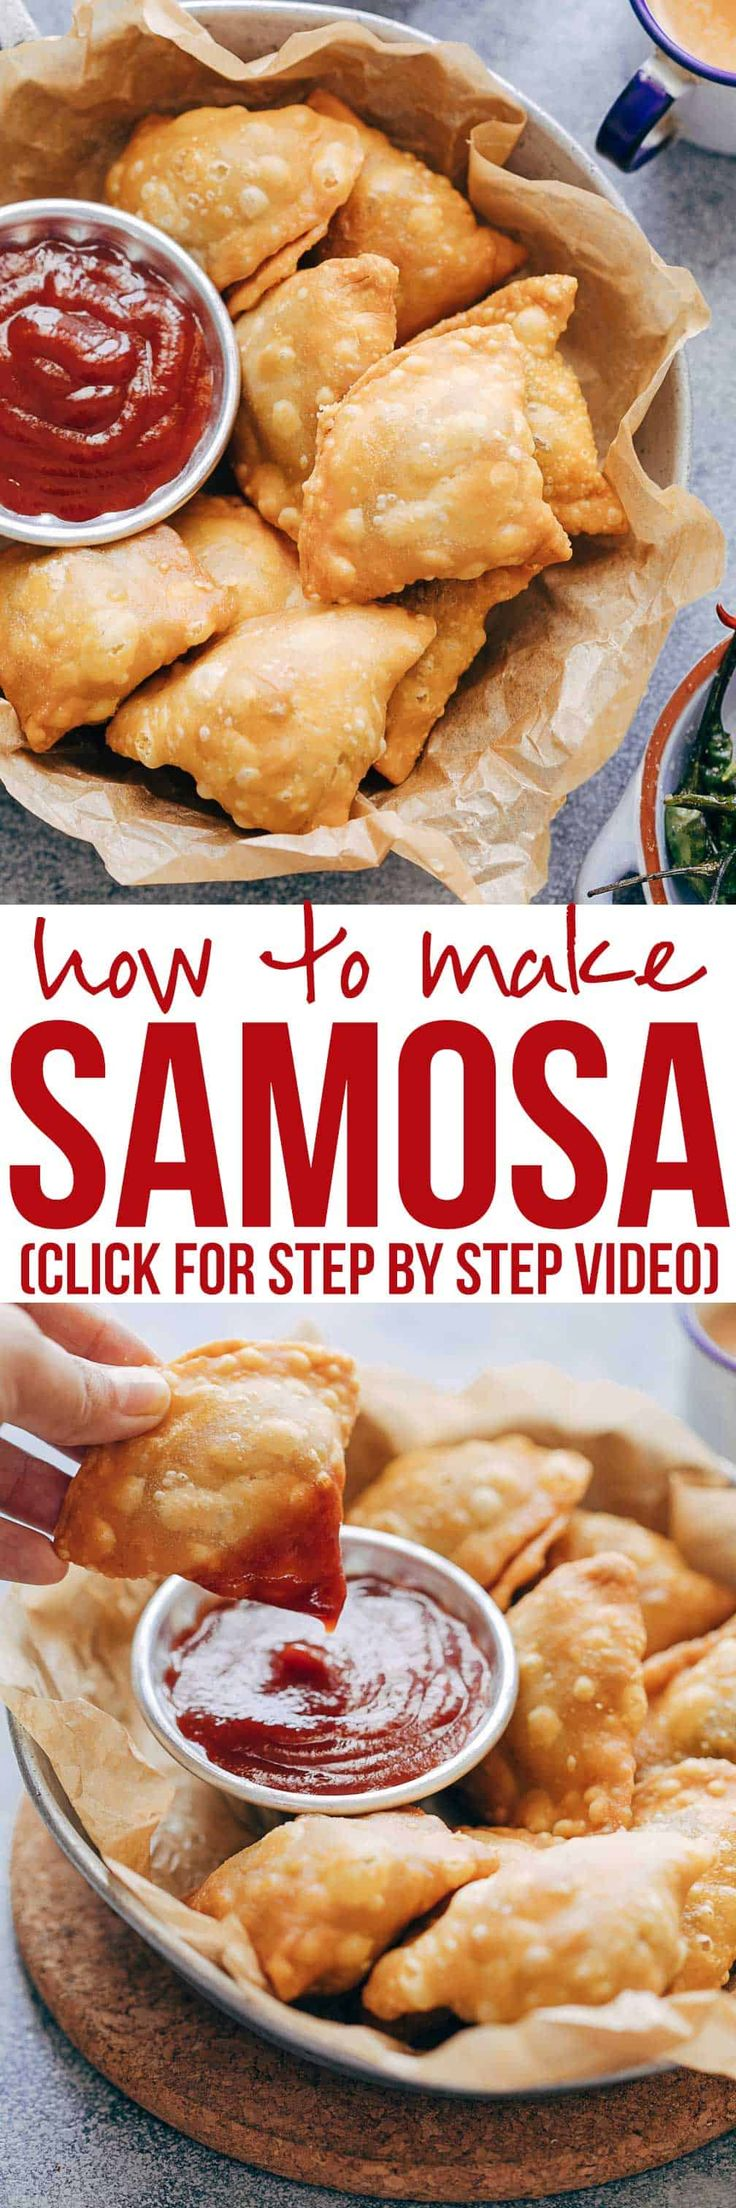 This is definitely the best Indian punjabi samosa you'll every make at home!… 890a37f1f6625638ef81ac5a8b2c9094